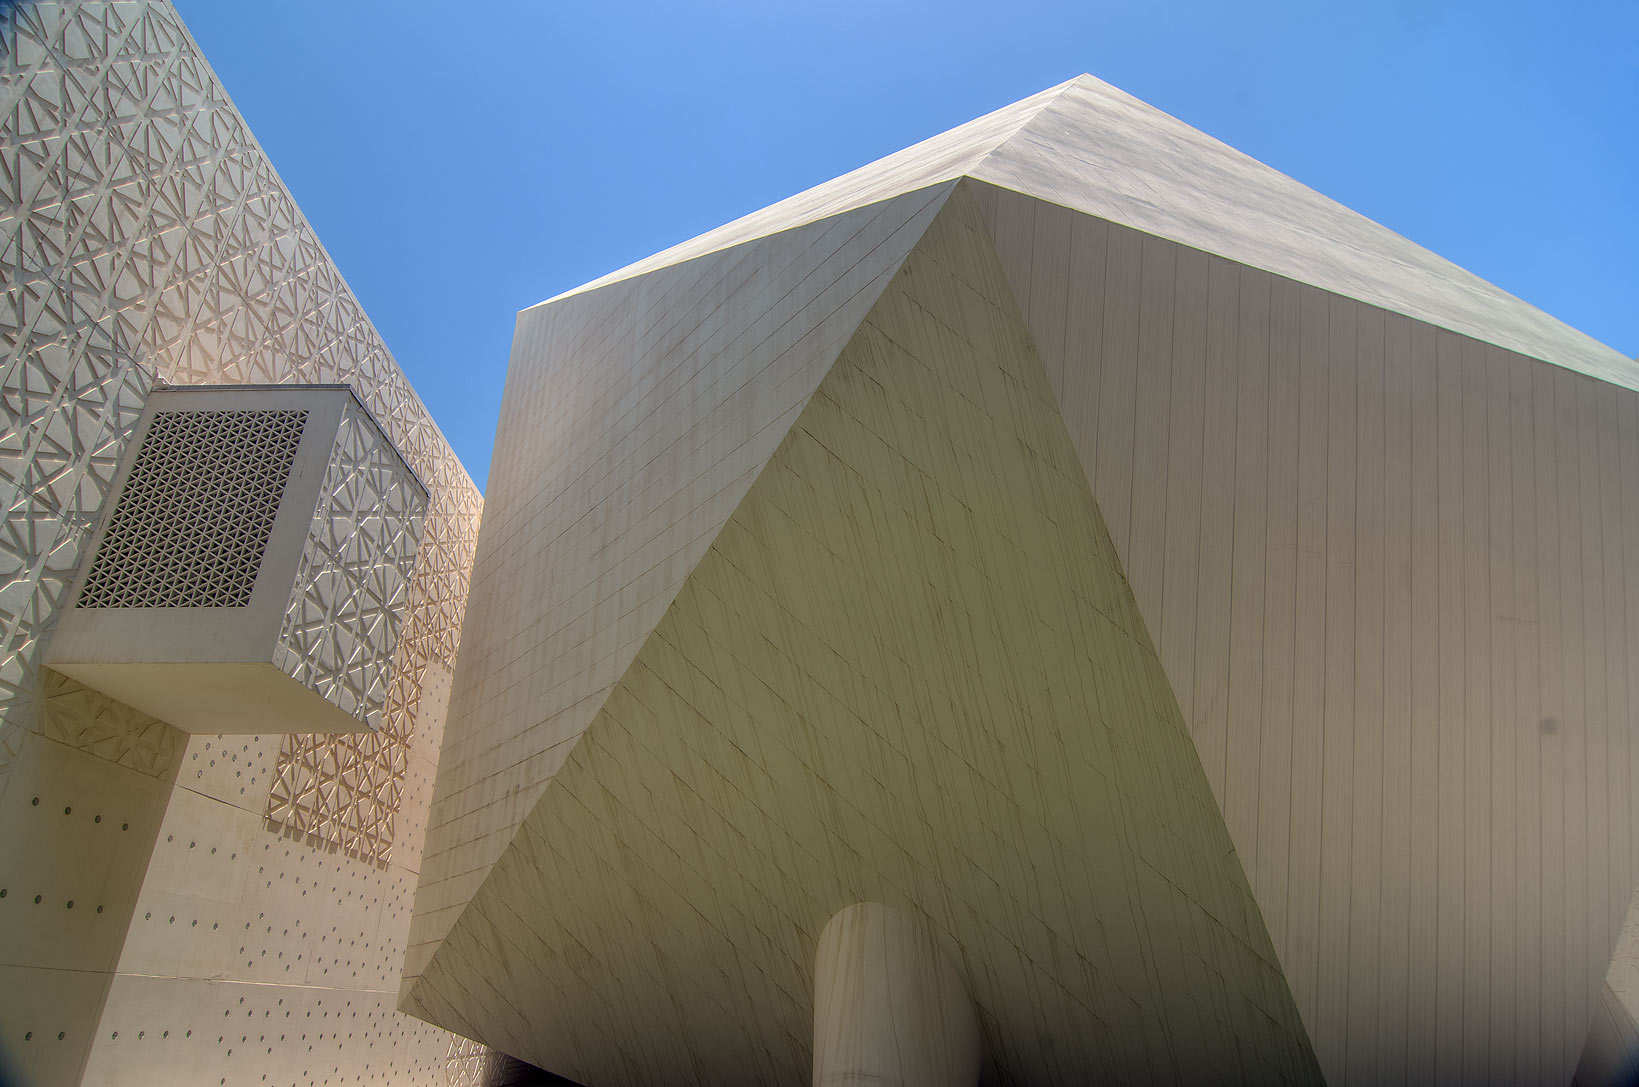 Icosahedron lecture hall of Weill Cornell Medical...in Education City campus. Doha, Qatar